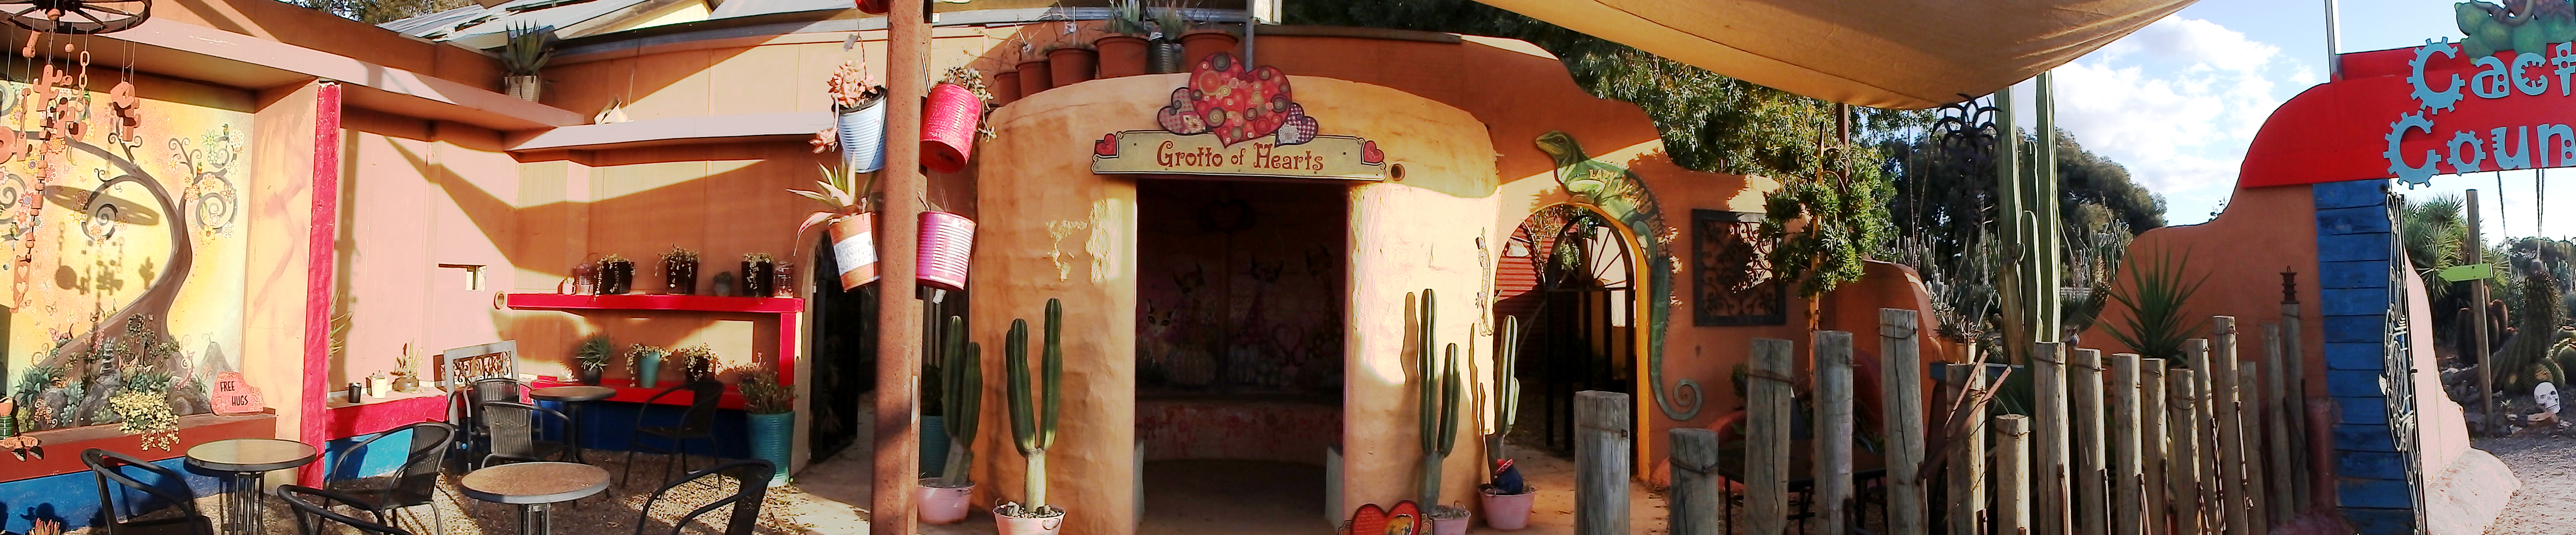 Grotto of Hearts